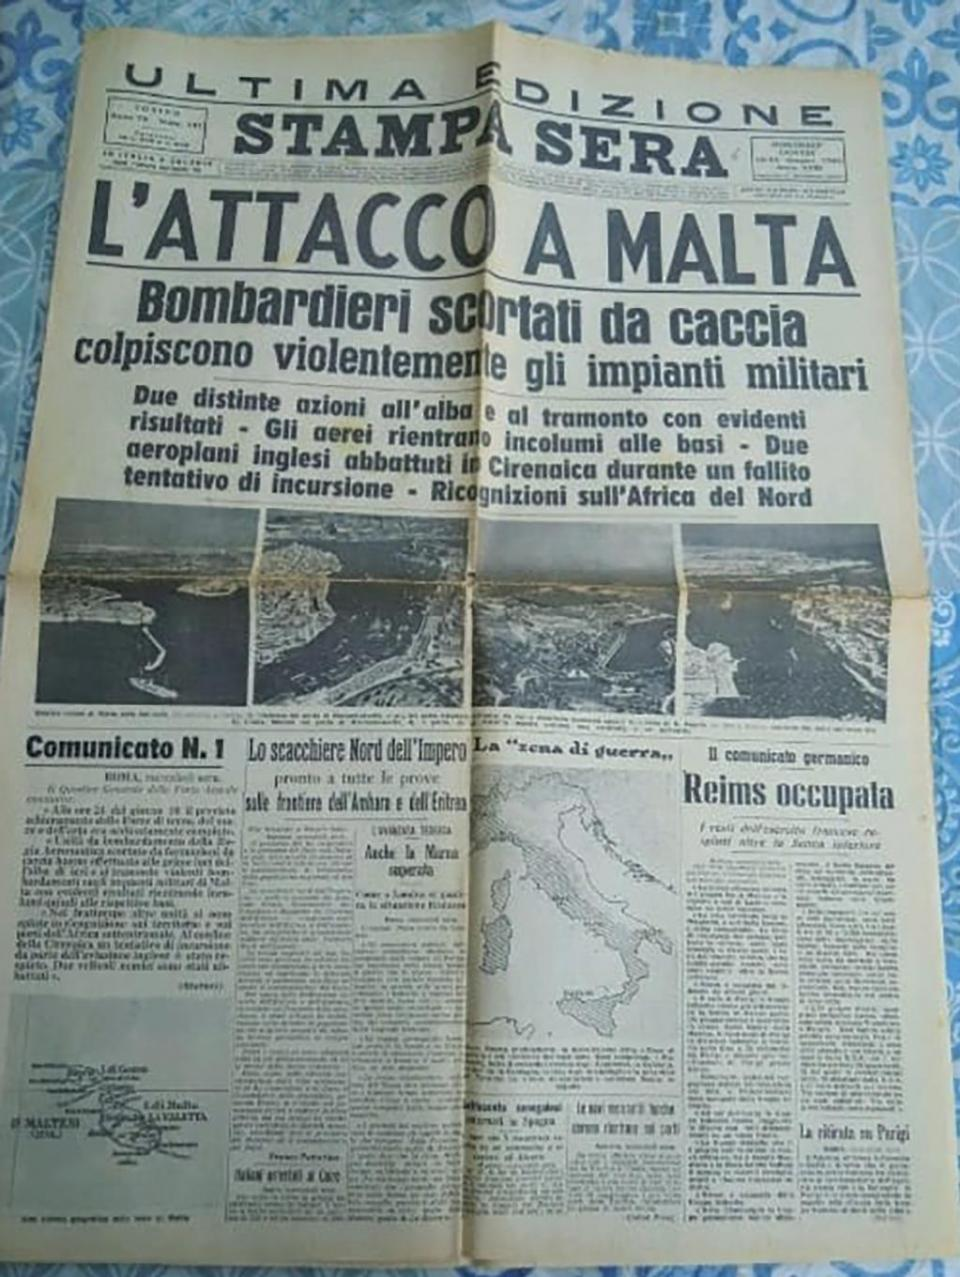 The front page of the June 11, 1940 edition of the Italian newspaper Stampa Sera with the headline 'L'Attacco a Malta' (The attack on Malta). Photo: Facebook.com